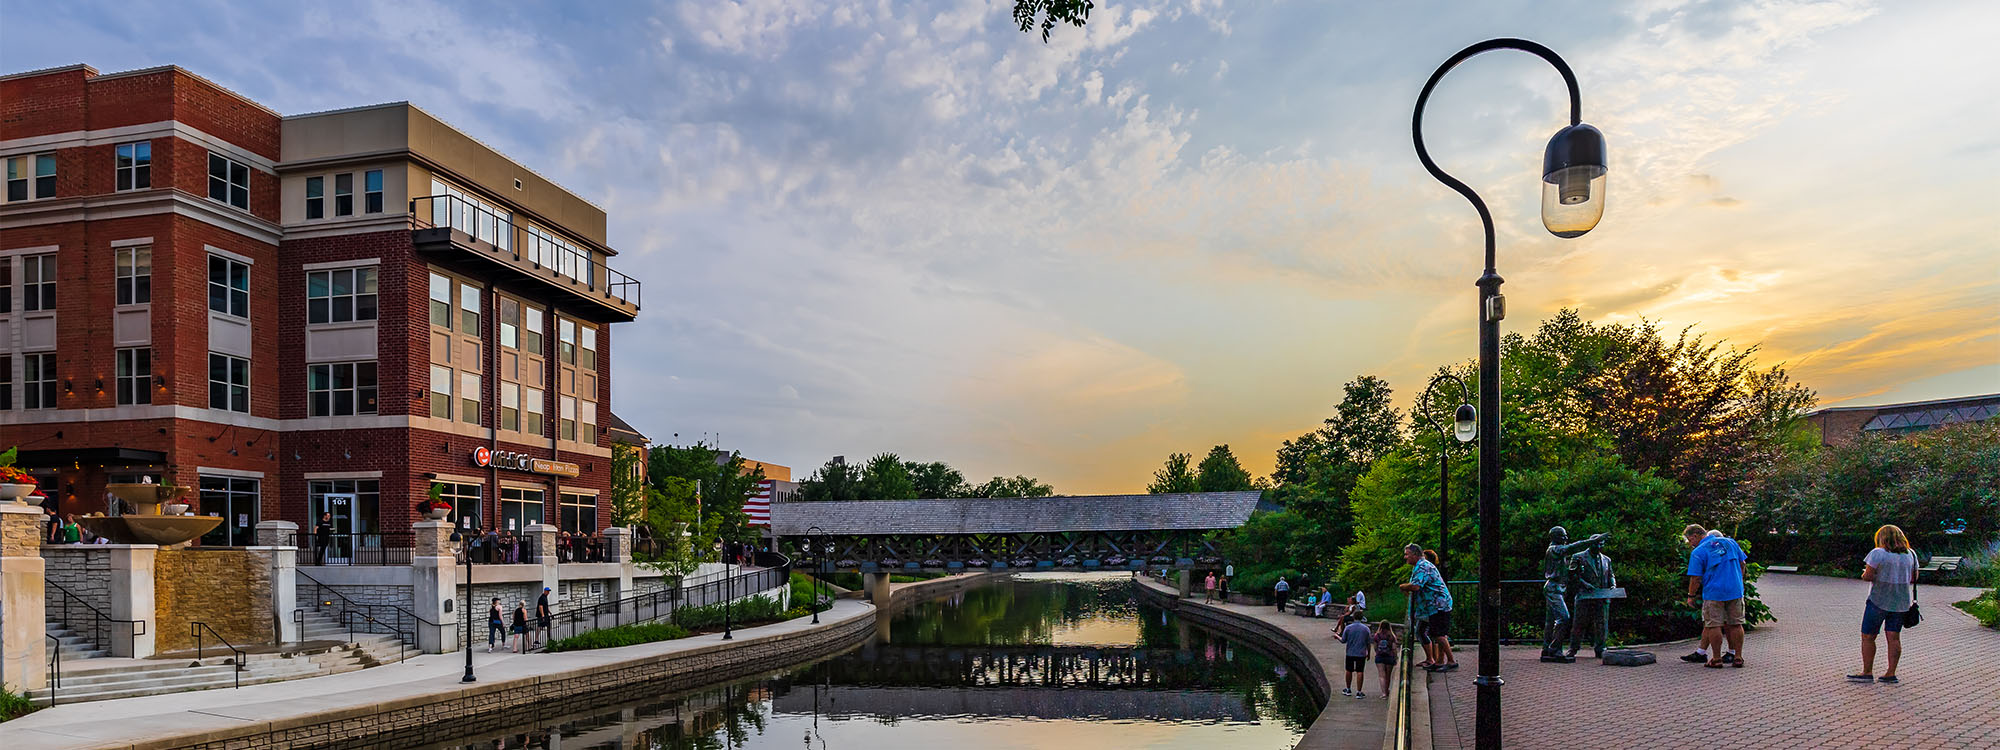 10 Things to Do in Naperville at Night